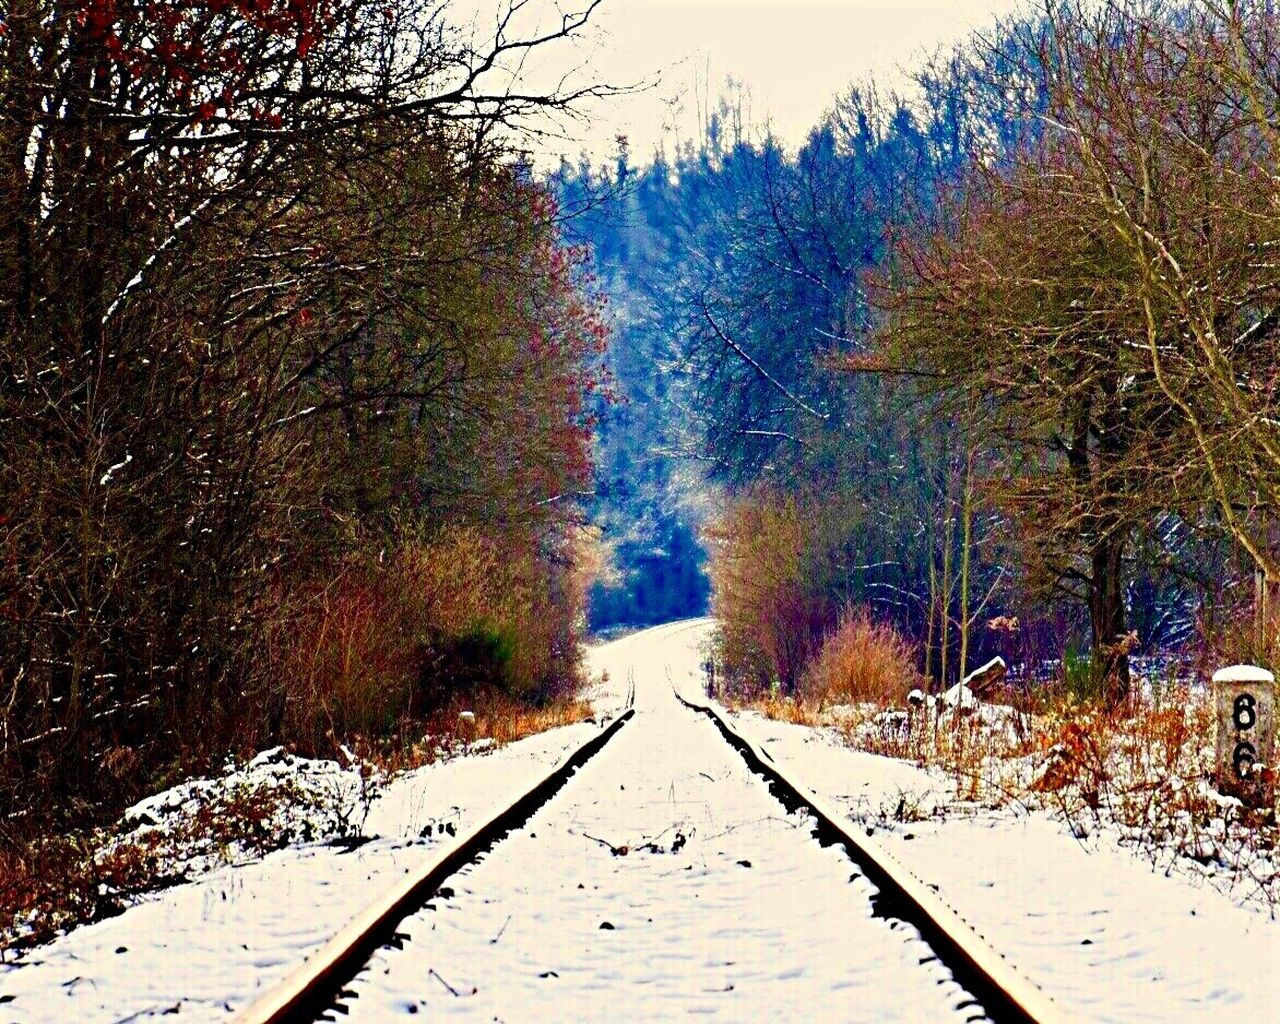 Trainstation Snow Cold Temperature Tree Winter Nature Beauty In Nature Scenics The Way Forward Outdoors Forest Day Landscape No People Snowing Sky EyeEm Nature Lover EyeEm Traveling EyeEm Best Shots EyeEm Nature Collection Eyem Nature Lover Transportation